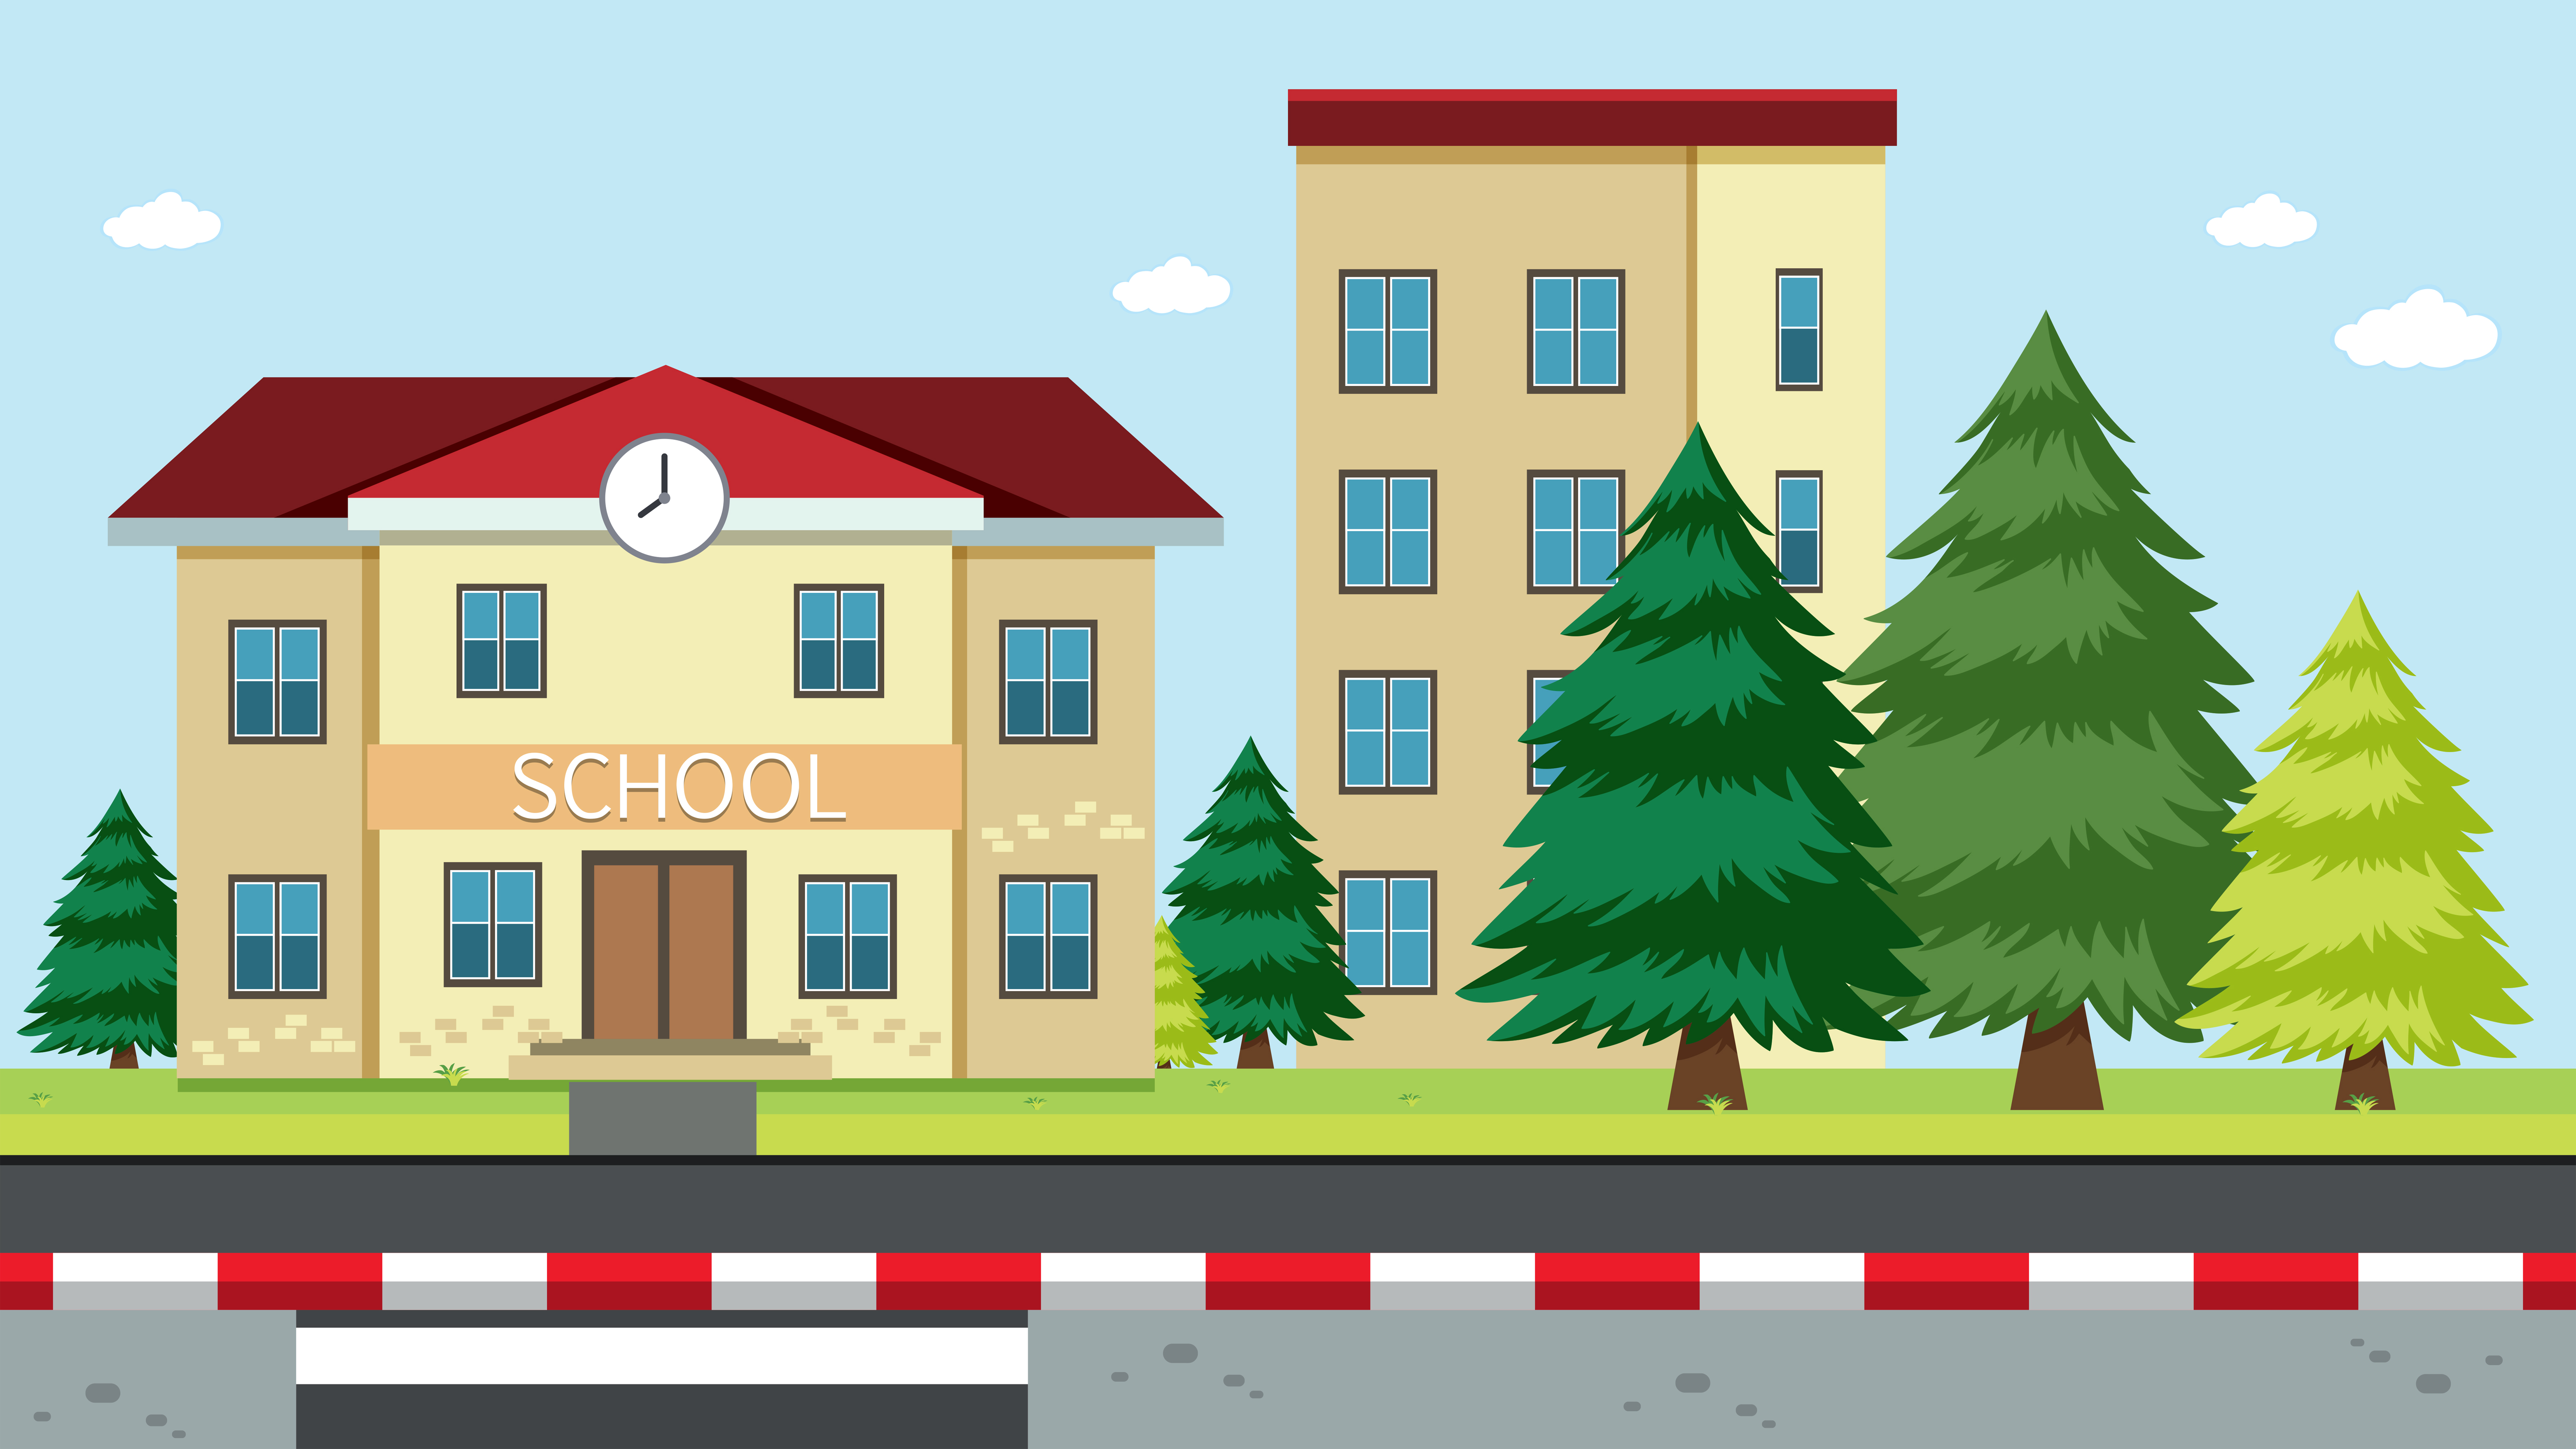 A School Building Scene - Download Free Vectors, Clipart ...